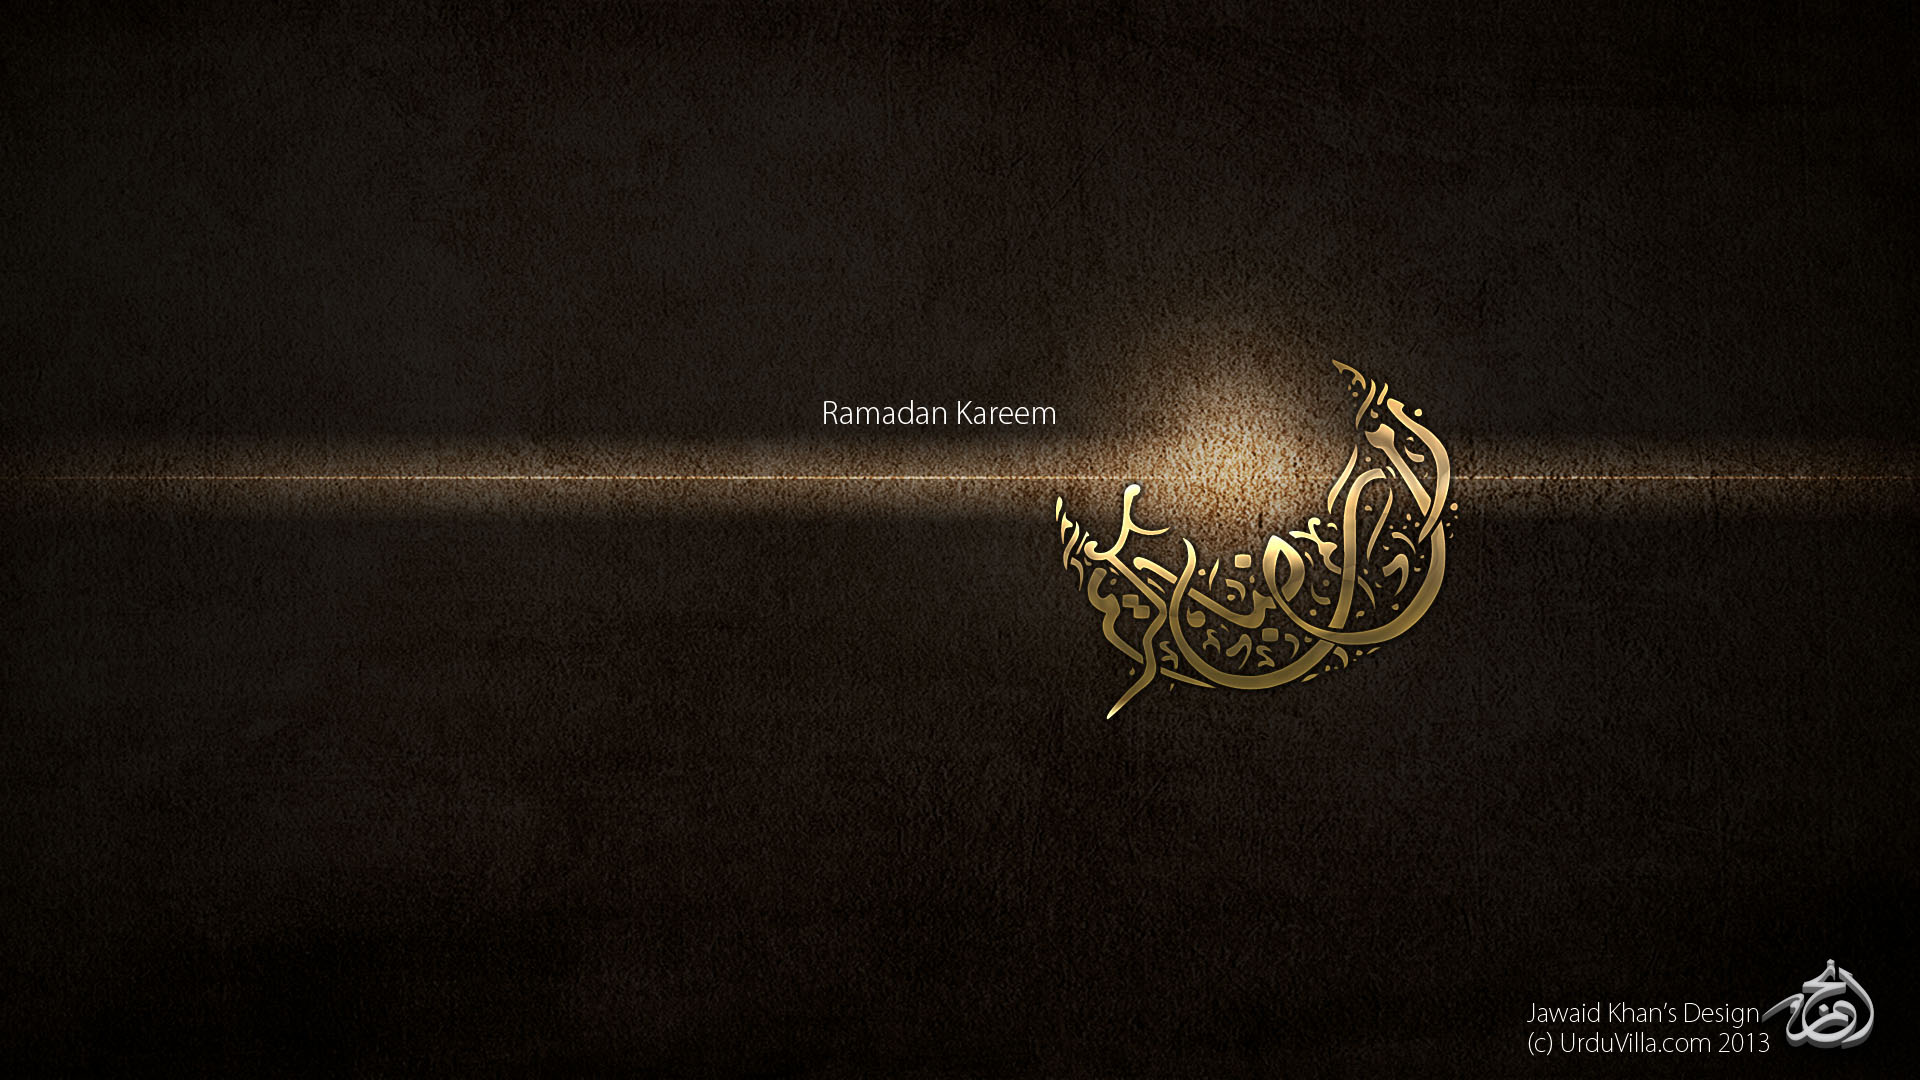 Full HD wallpaper Ramadan Kareem by 475 on DeviantArt